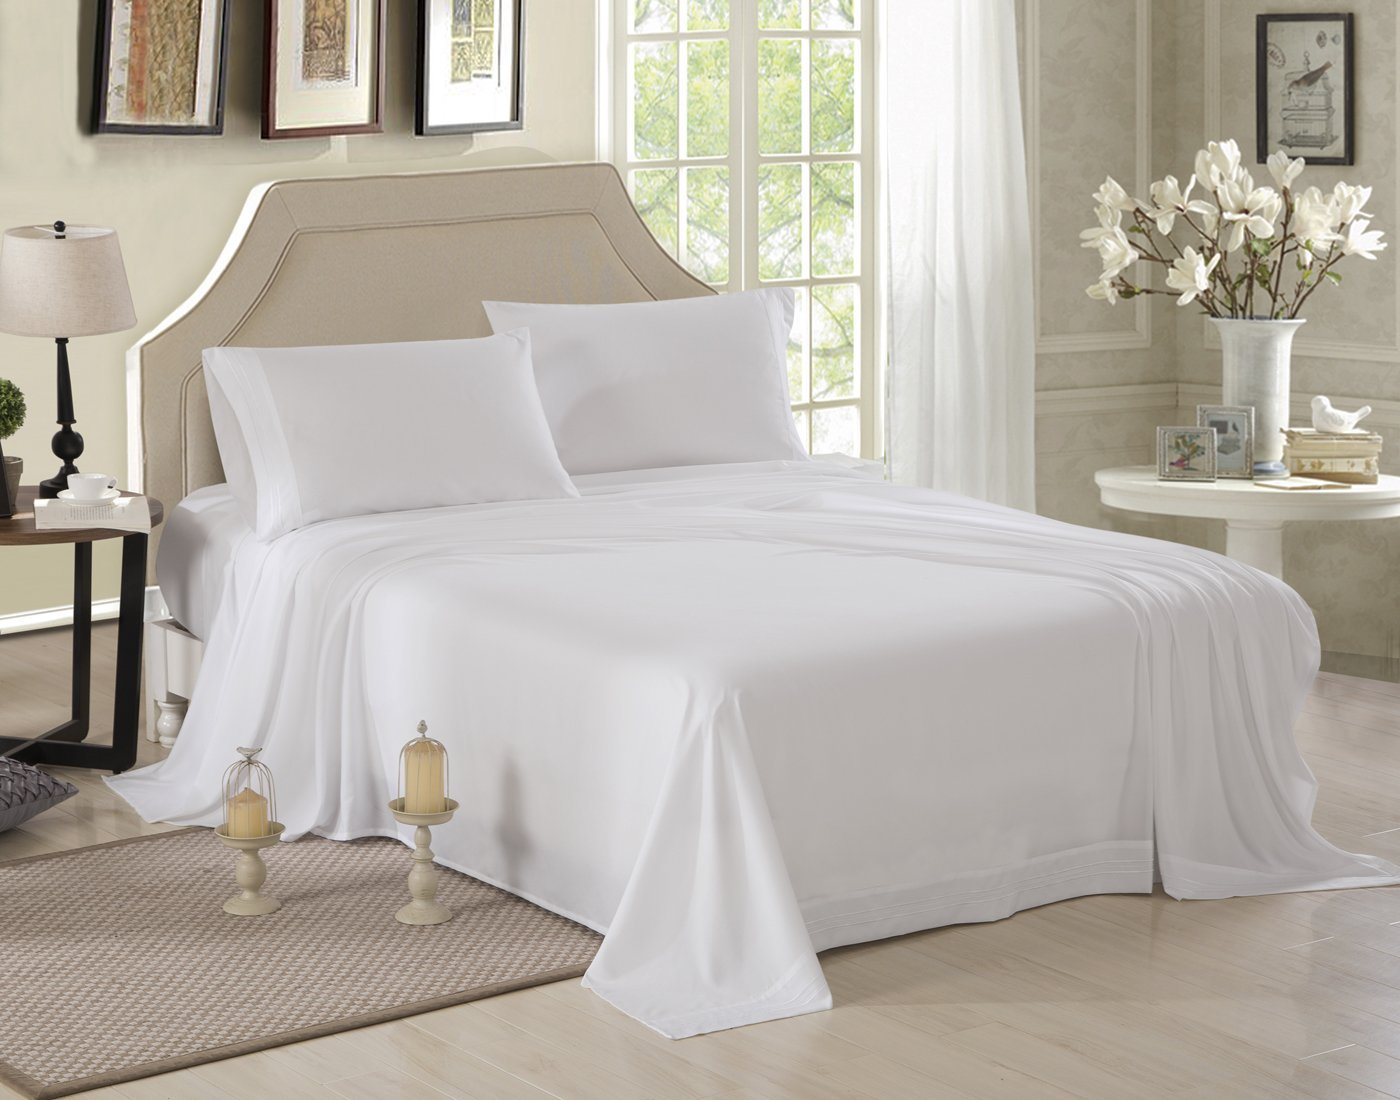 Honeymoon 1800 Brushed Microfiber Embroidered Bed Sheet Set, Ultra Soft,  Full   White   Walmart.com